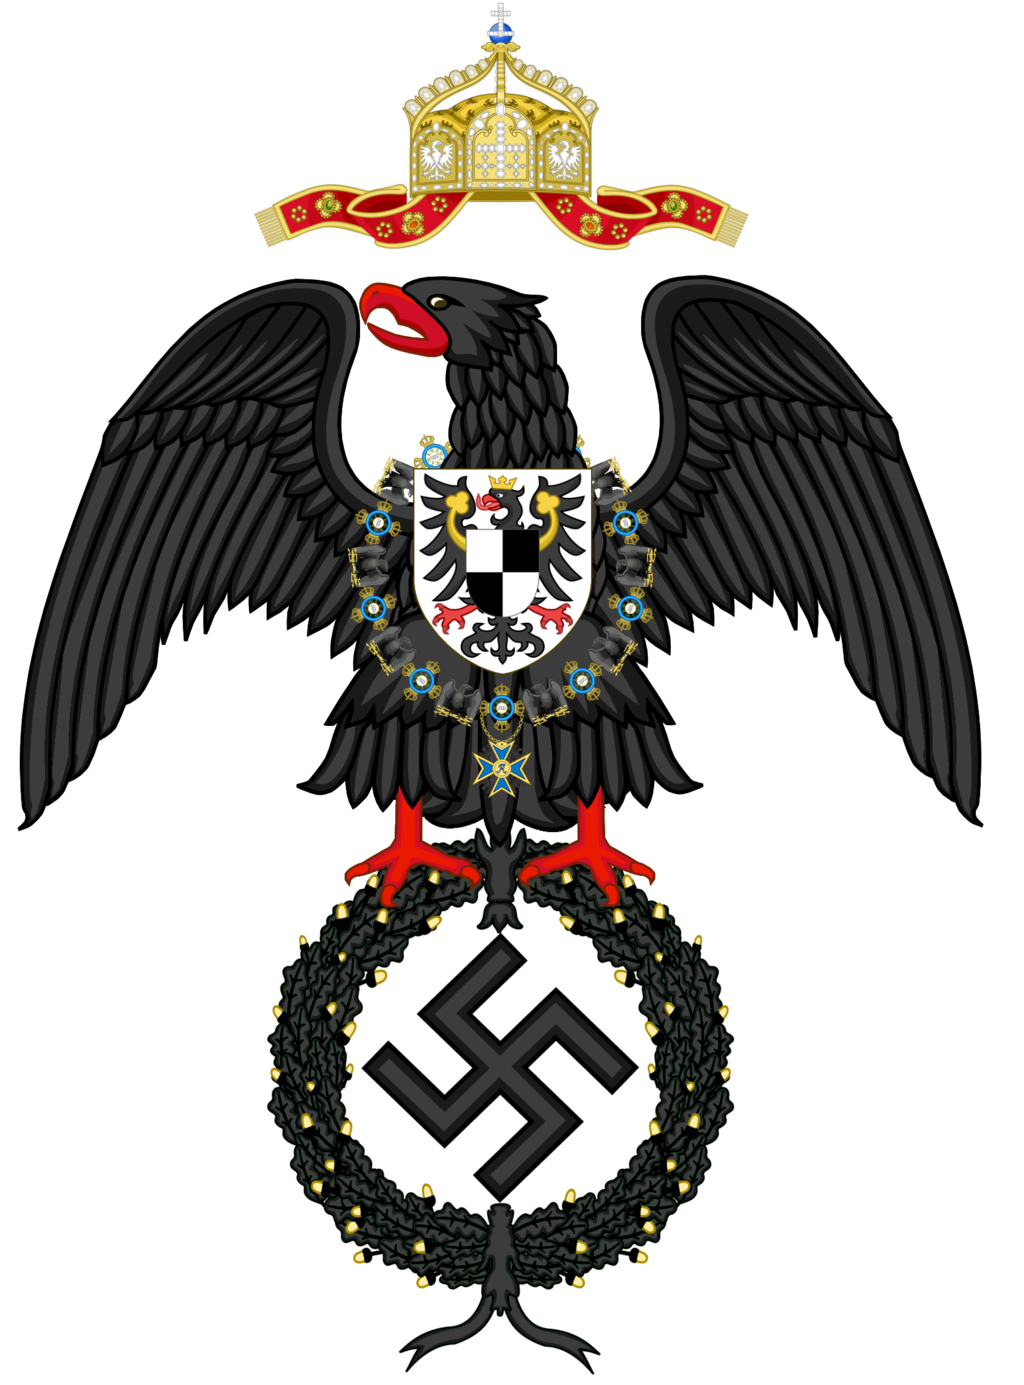 Image coa nazi imperial germany central victory by tiltschmaster coa nazi imperial germany central victory by tiltschmaster da6712fg biocorpaavc